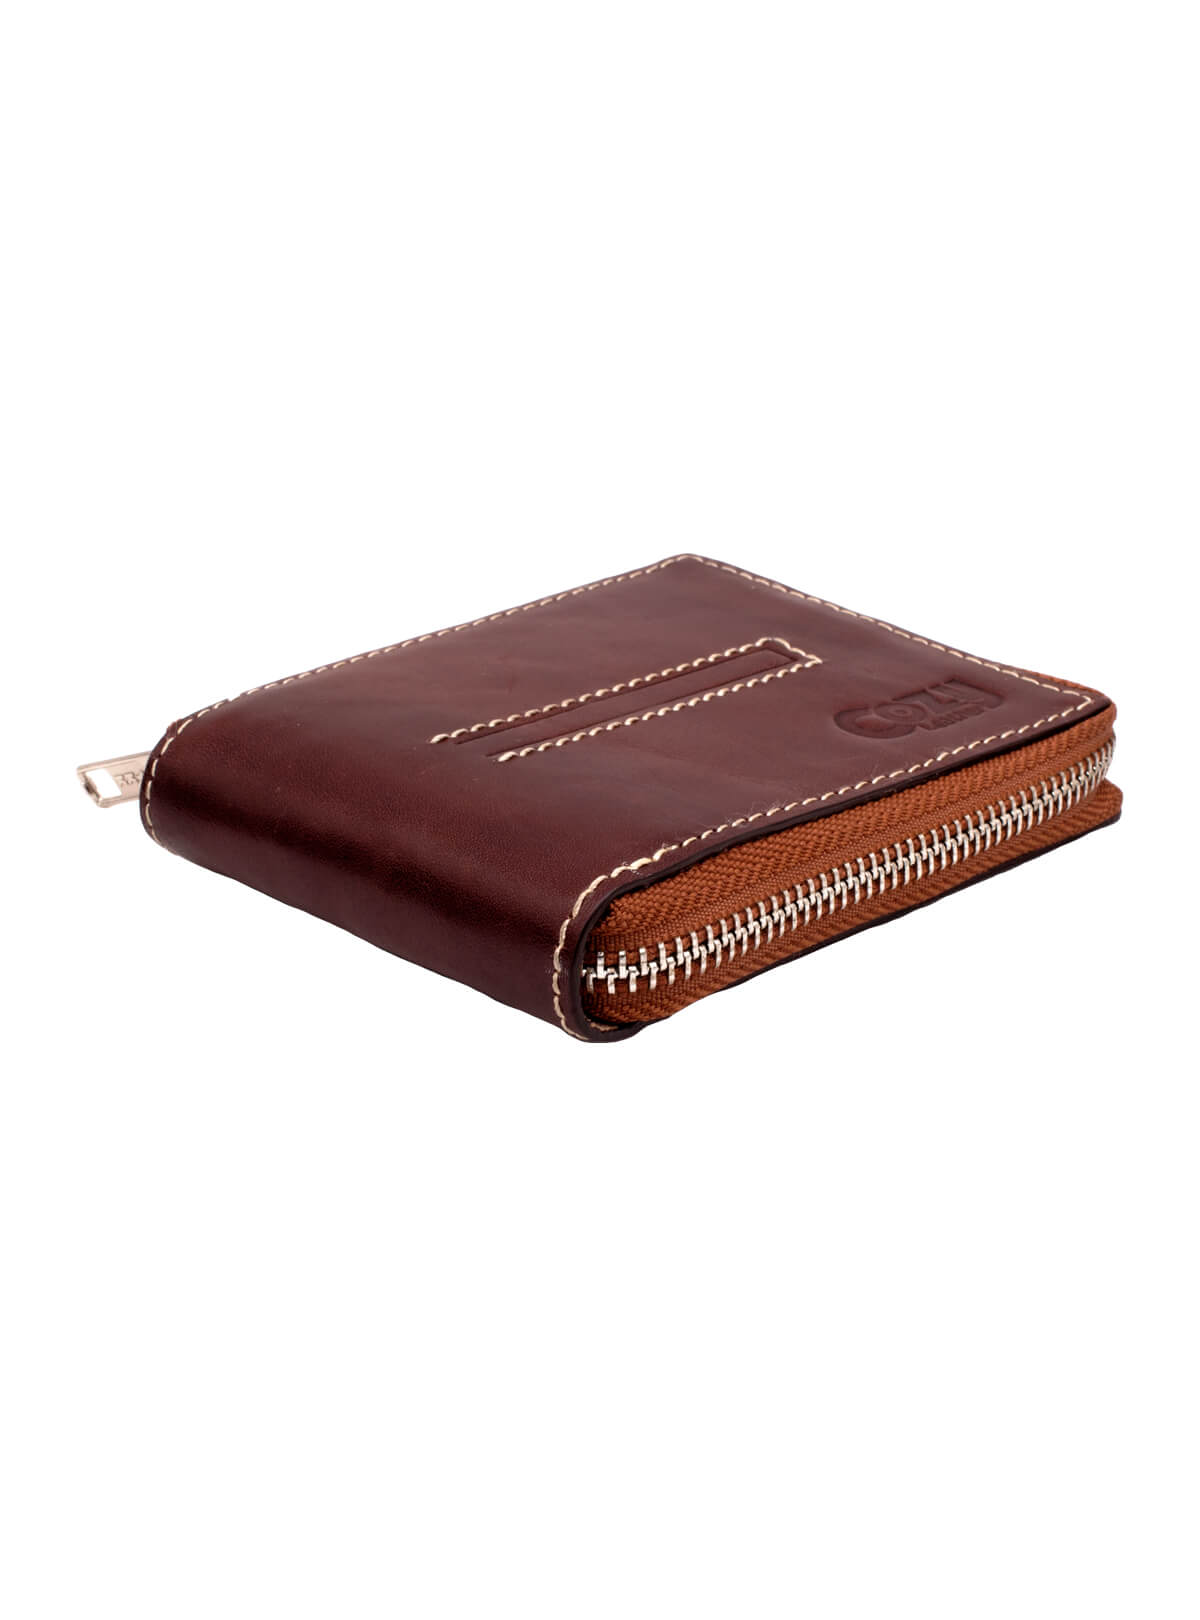 Maroon Leather Chain Wallet